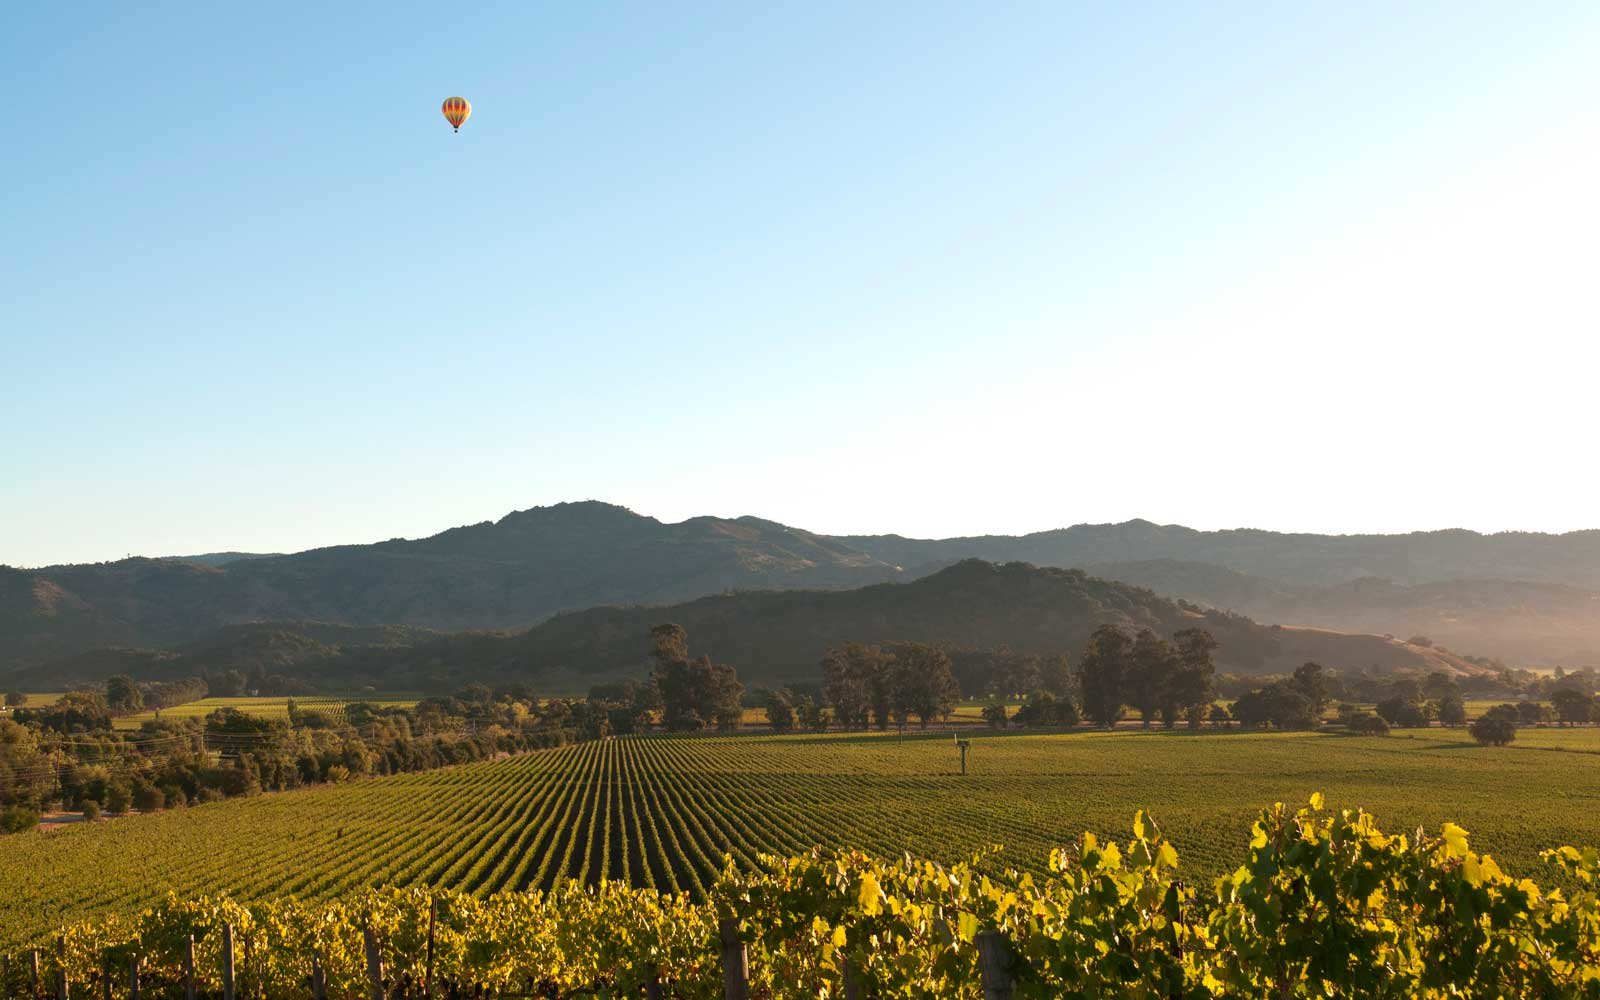 Vineyards of Napa Valley, California